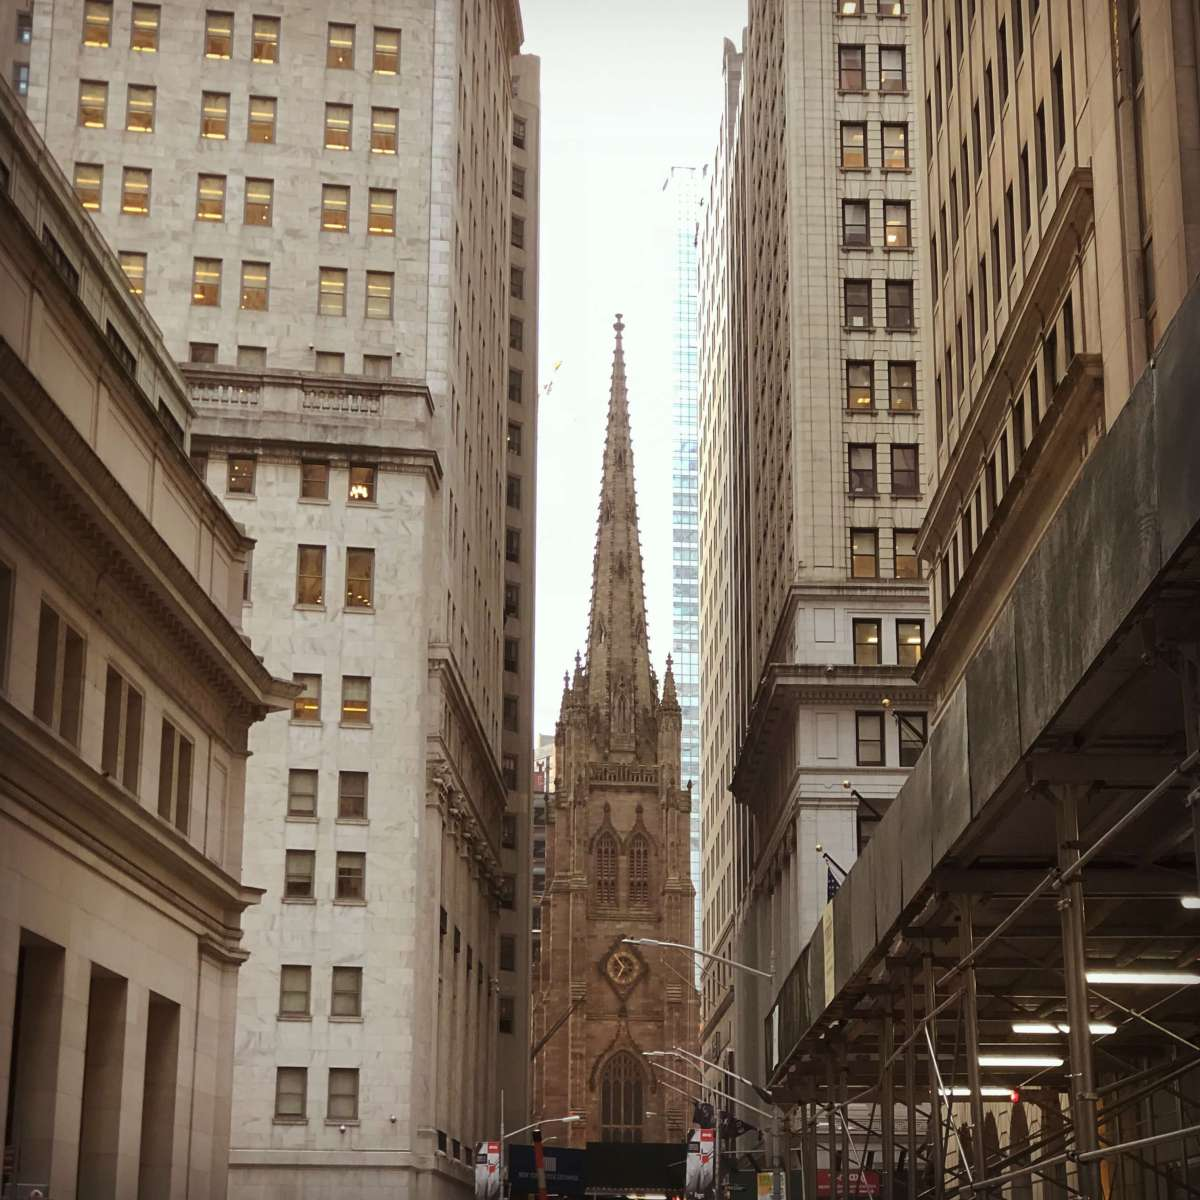 Trinity Church as seen from near the Stock Exchange in Wall StreetTrinity Church as seen from near the Stock Exchange in Wall Street